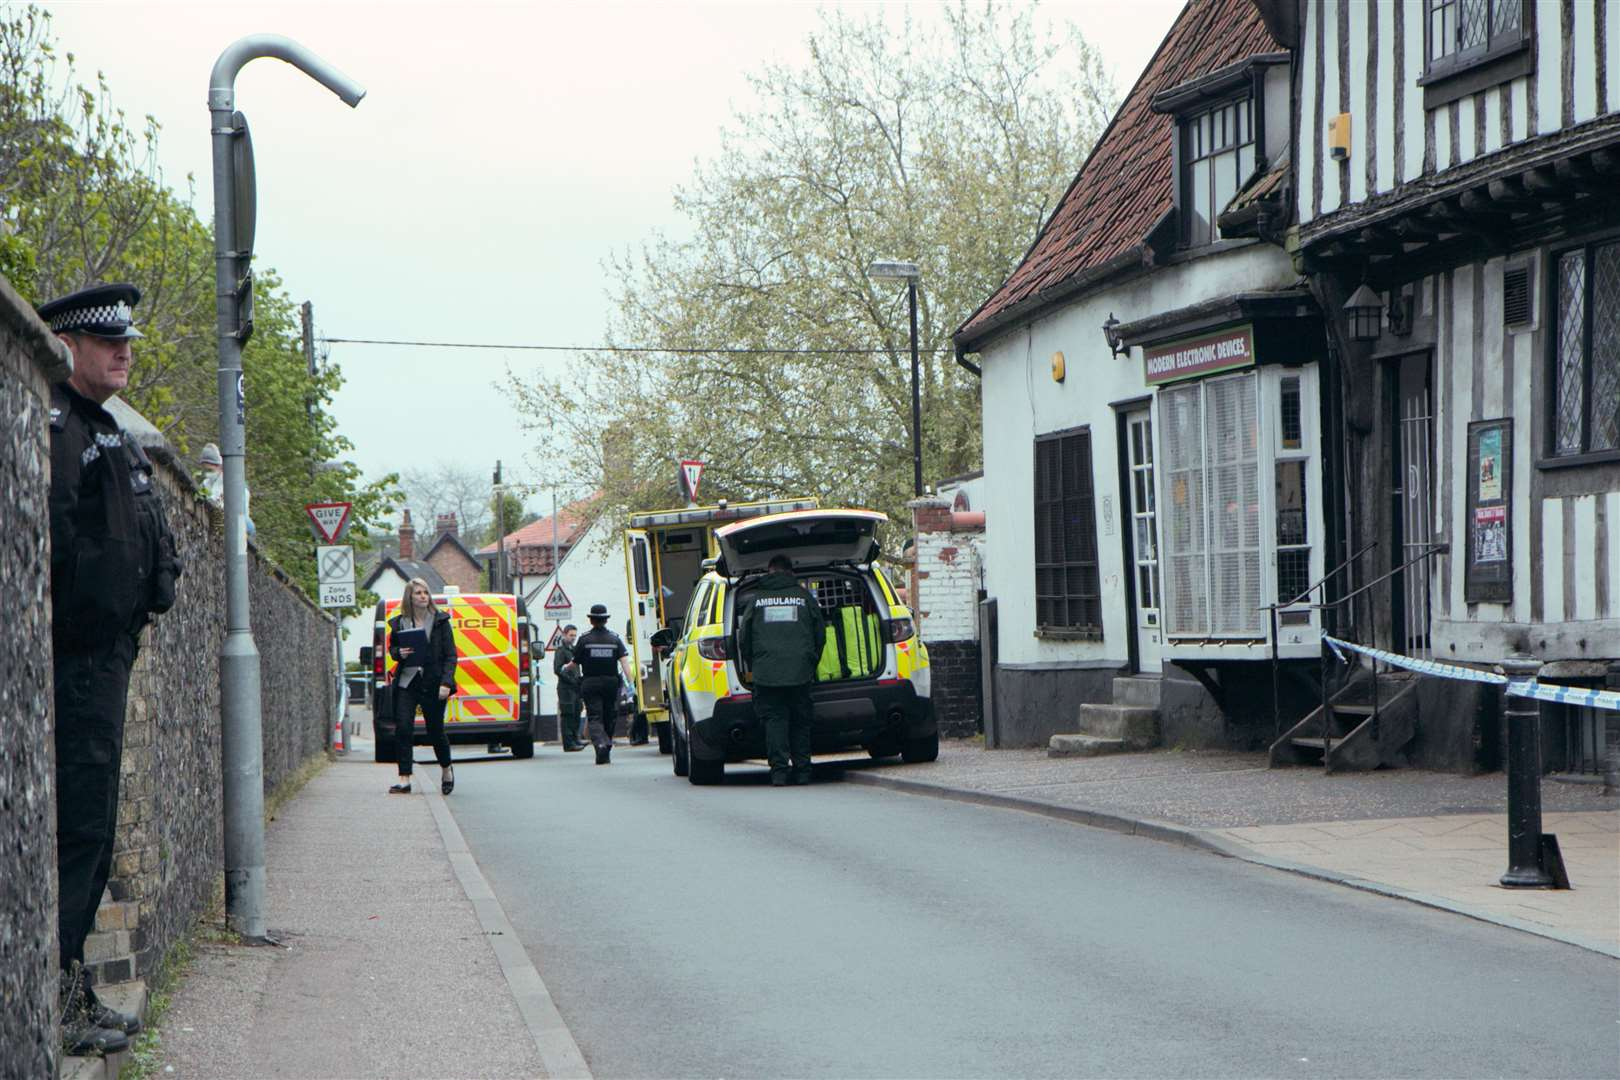 Police at the scene of of the incident this morning. Picture: Chris Morris